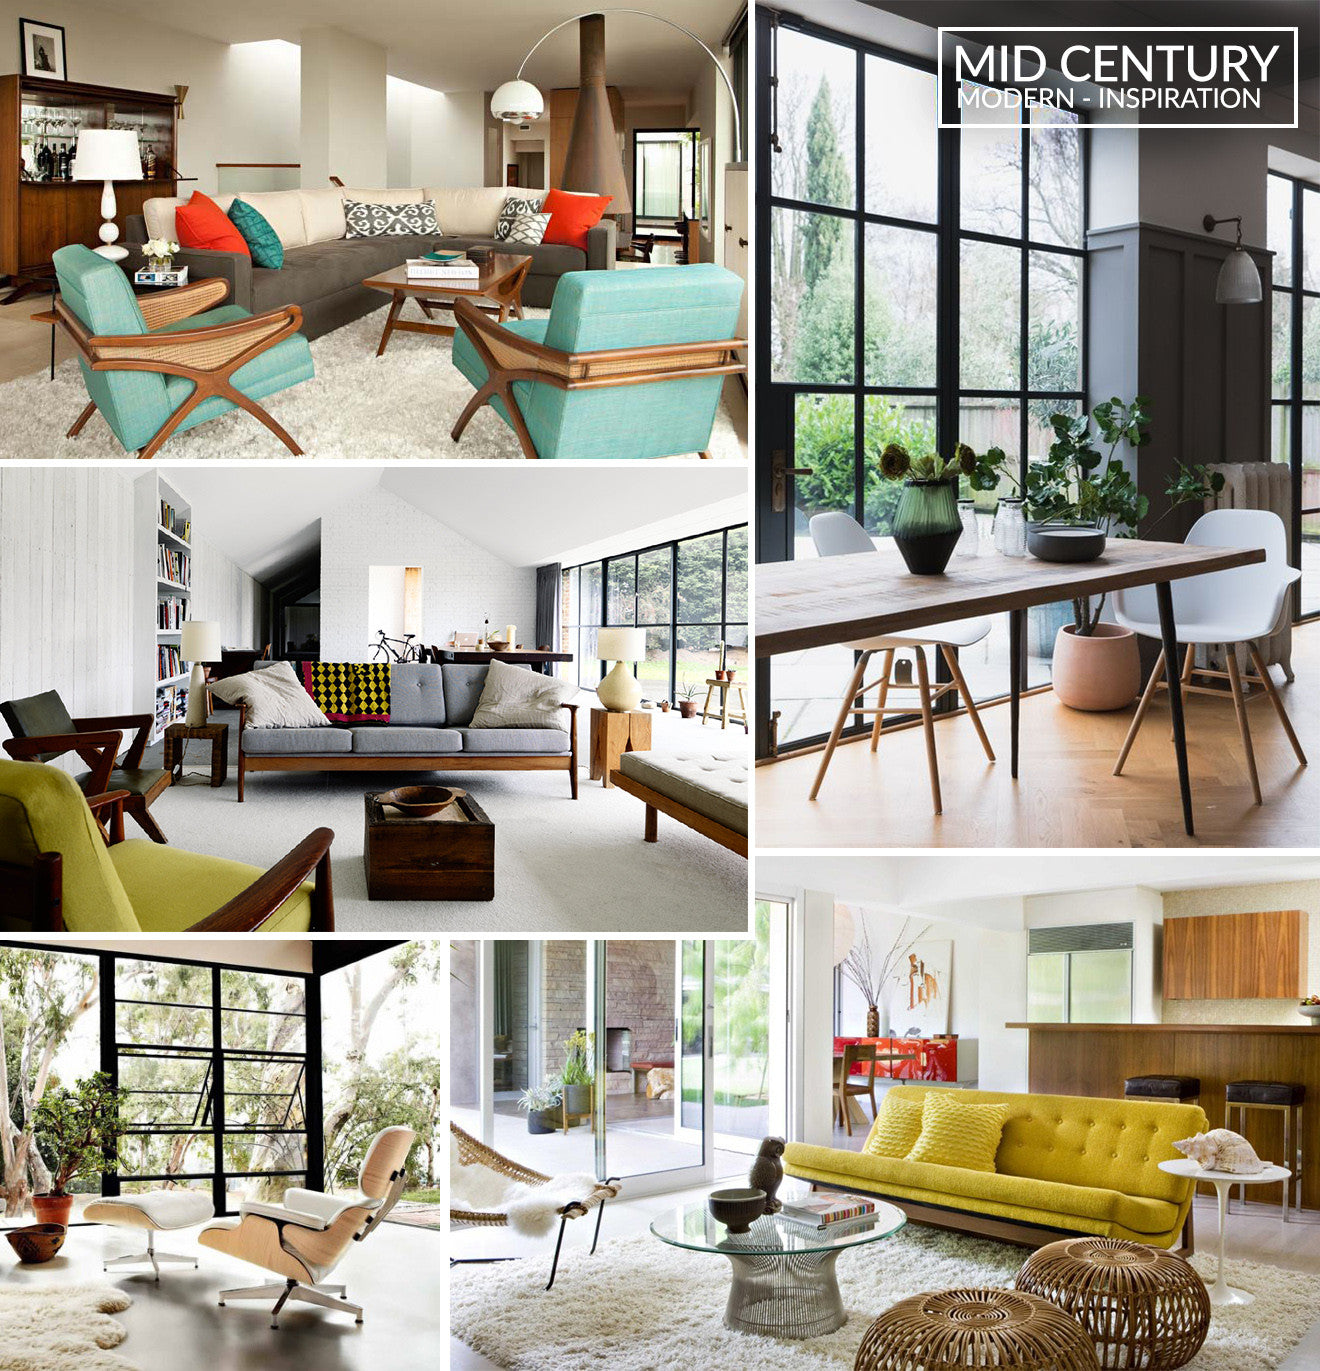 Inspiration: Mid Century Modern Interior Design – Martyn White Designs